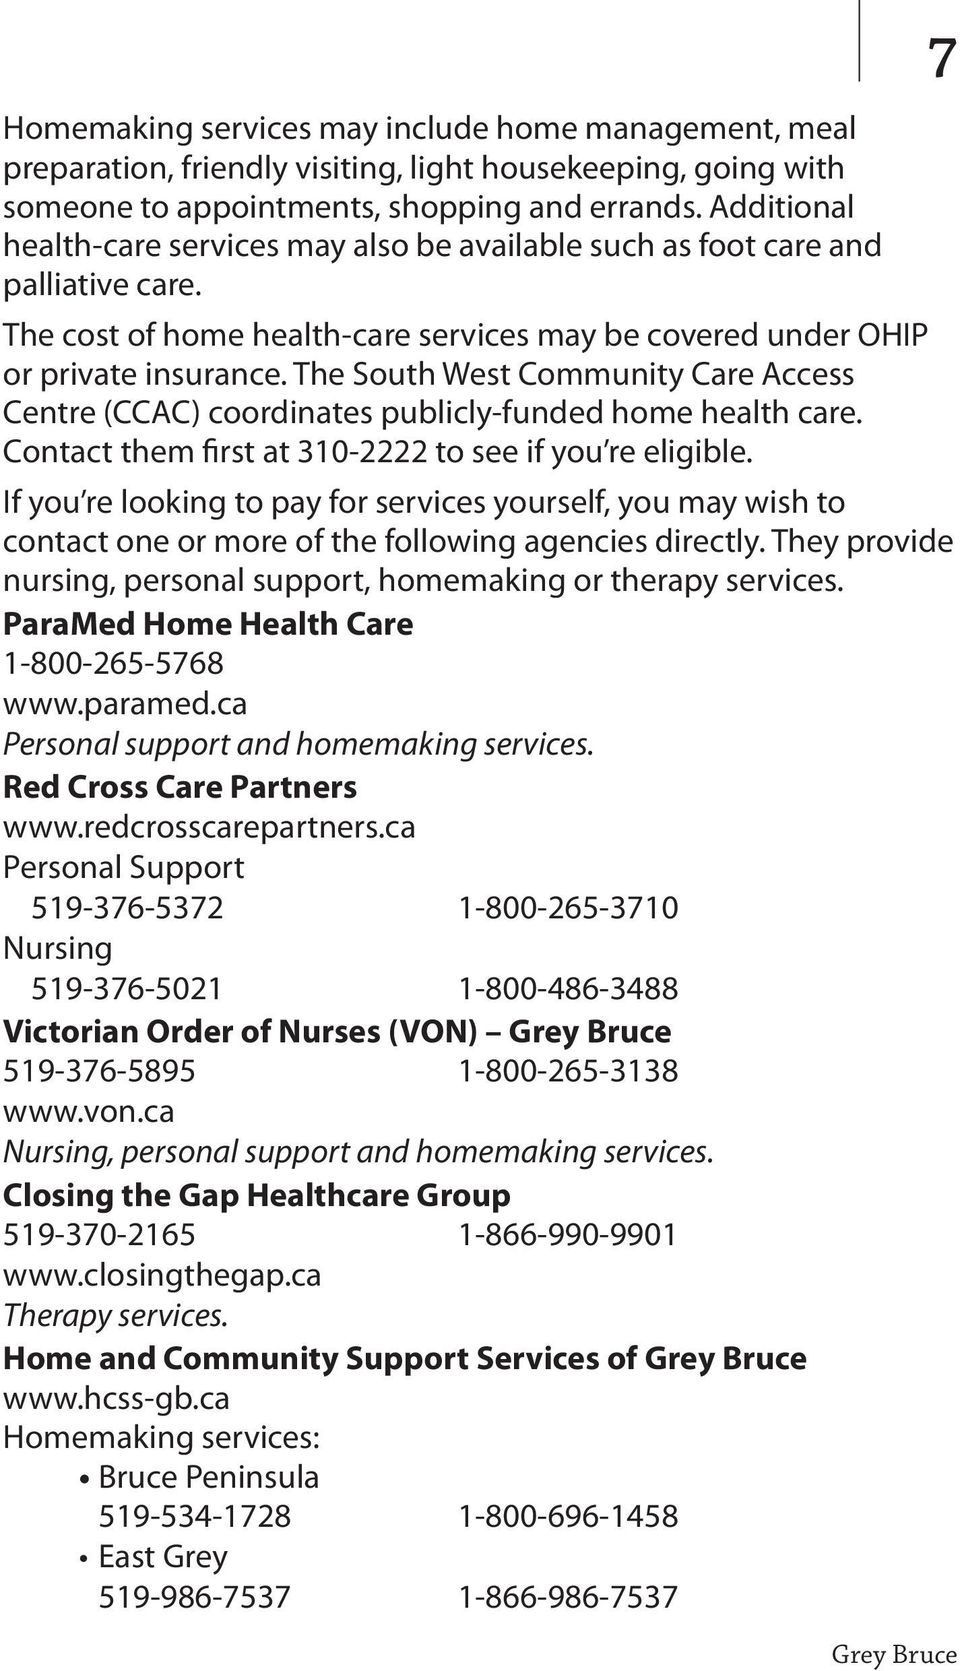 The South West Community Care Access Centre (CCAC) coordinates publicly-funded home health care. Contact them first at 310-2222 to see if you re eligible.